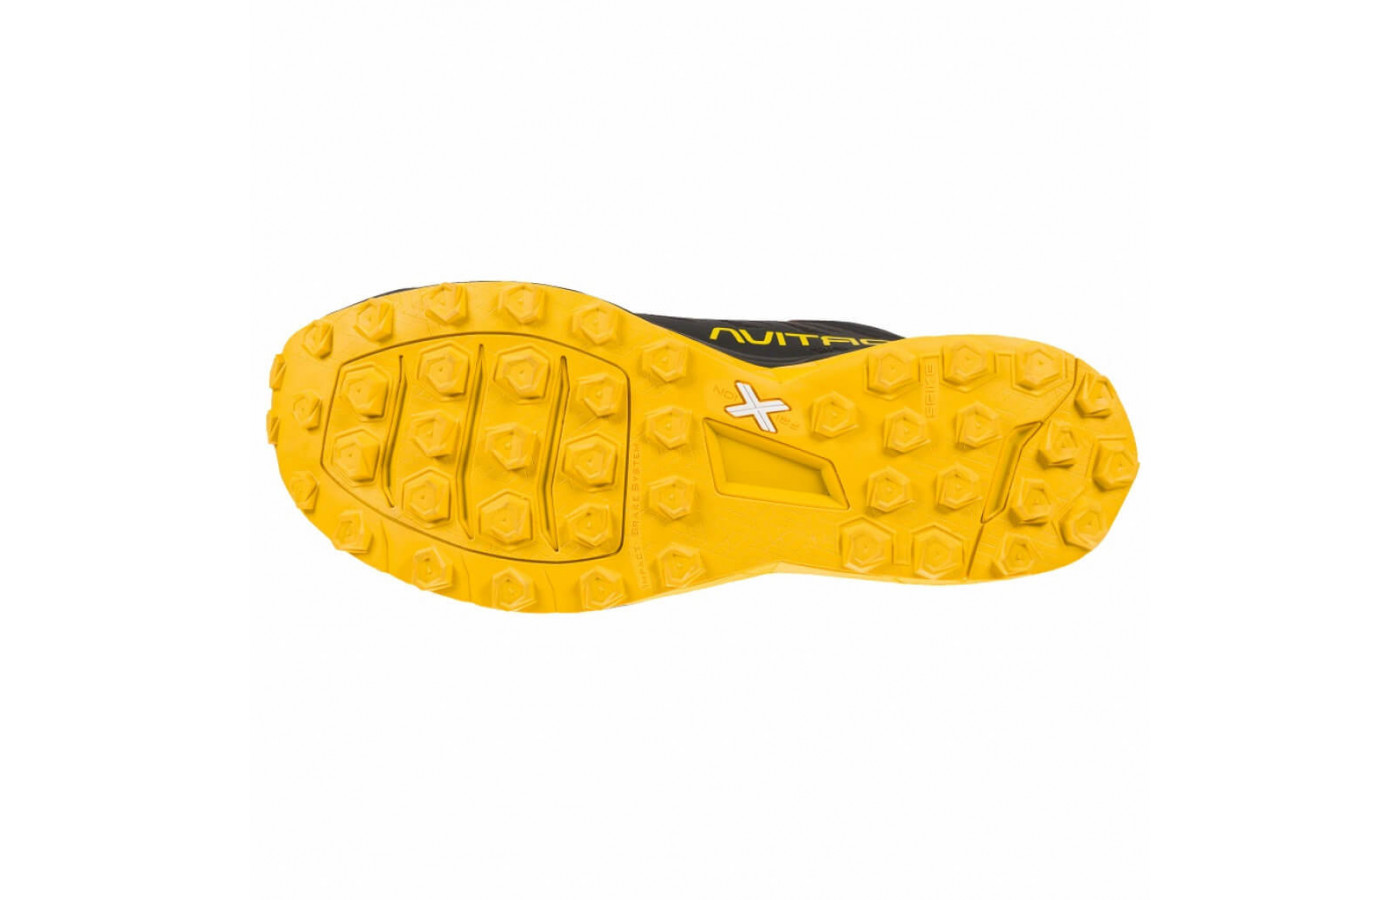 La Sportiva Kaptiva bottom